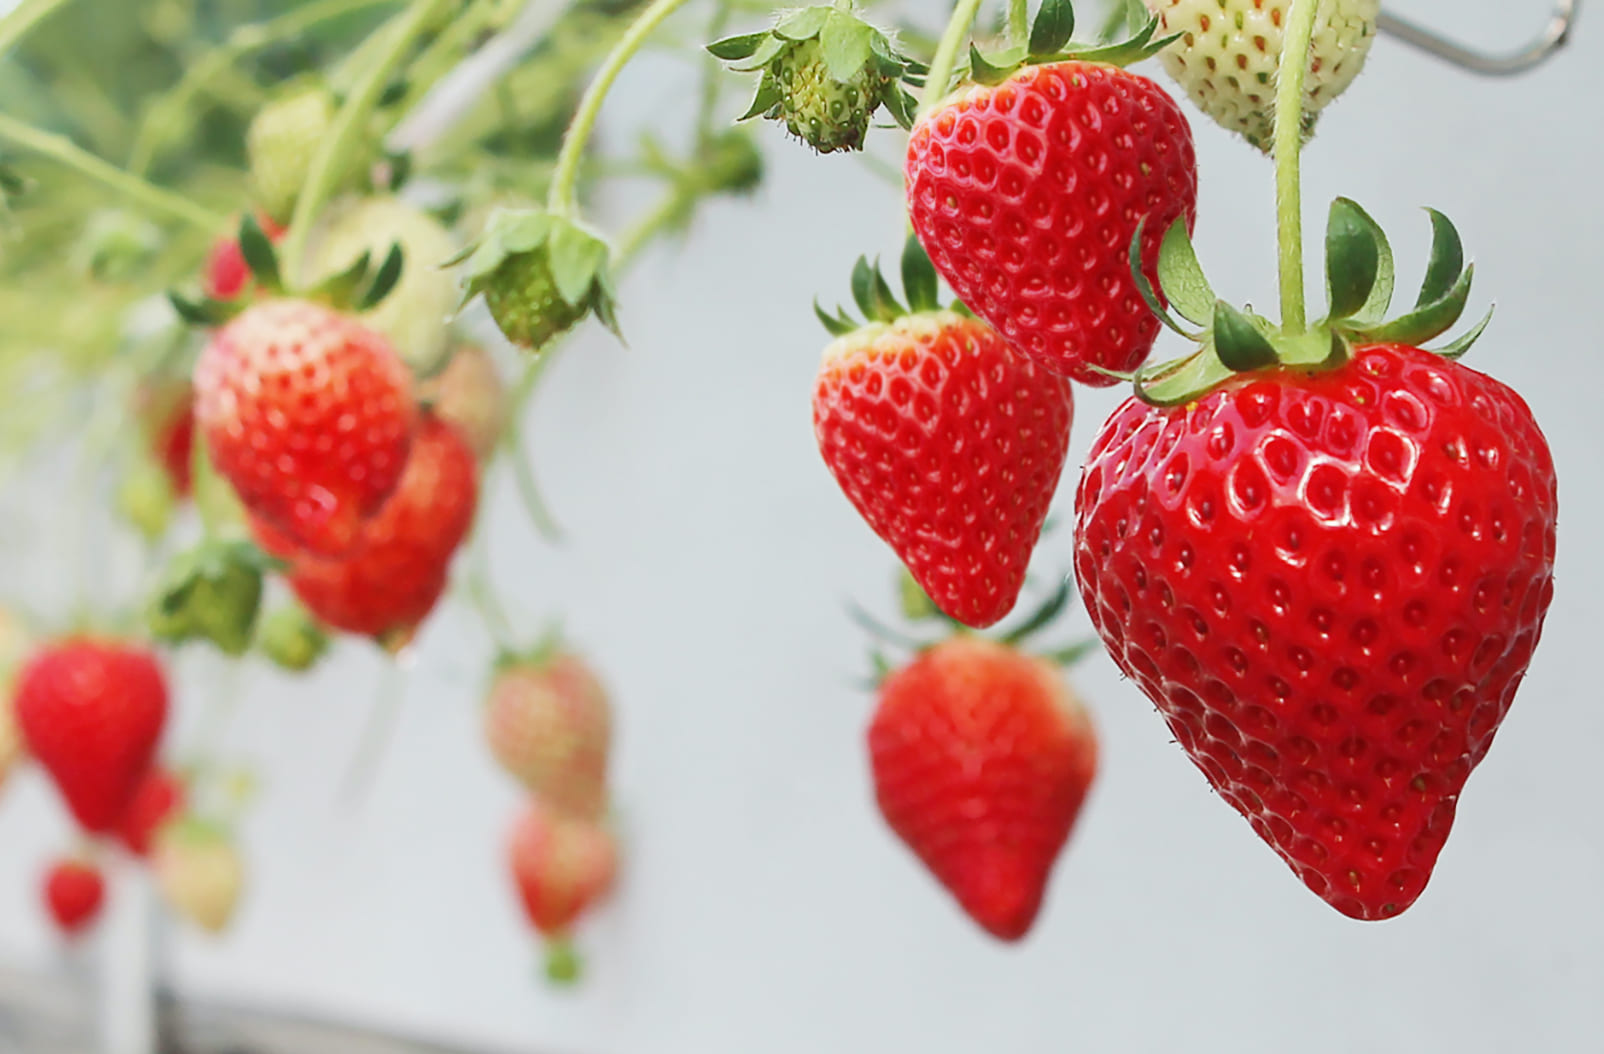 MIYOSHI GROUP will release two new varieties as the first generations!